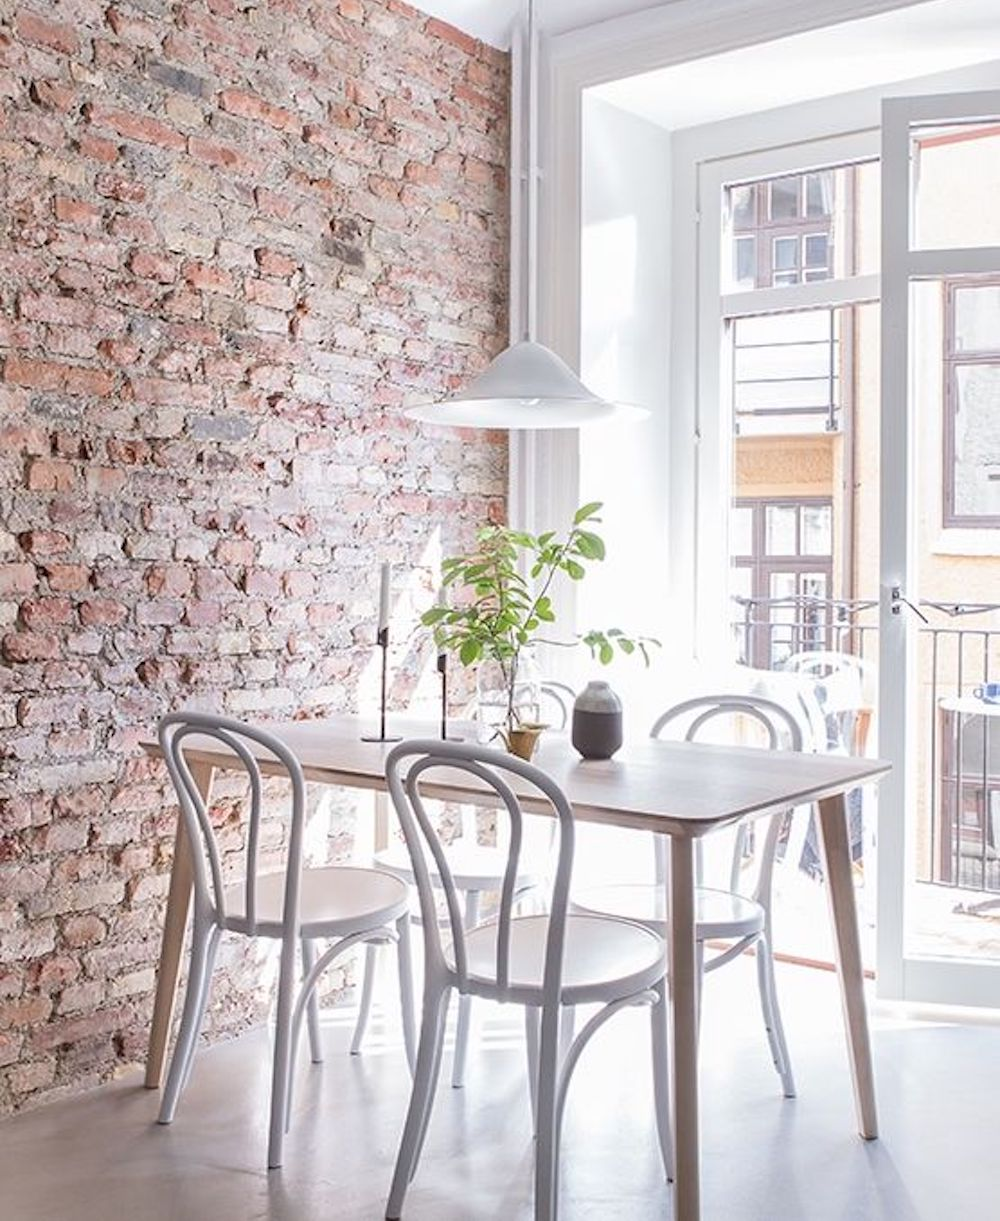 Dining area with exposed brick wall